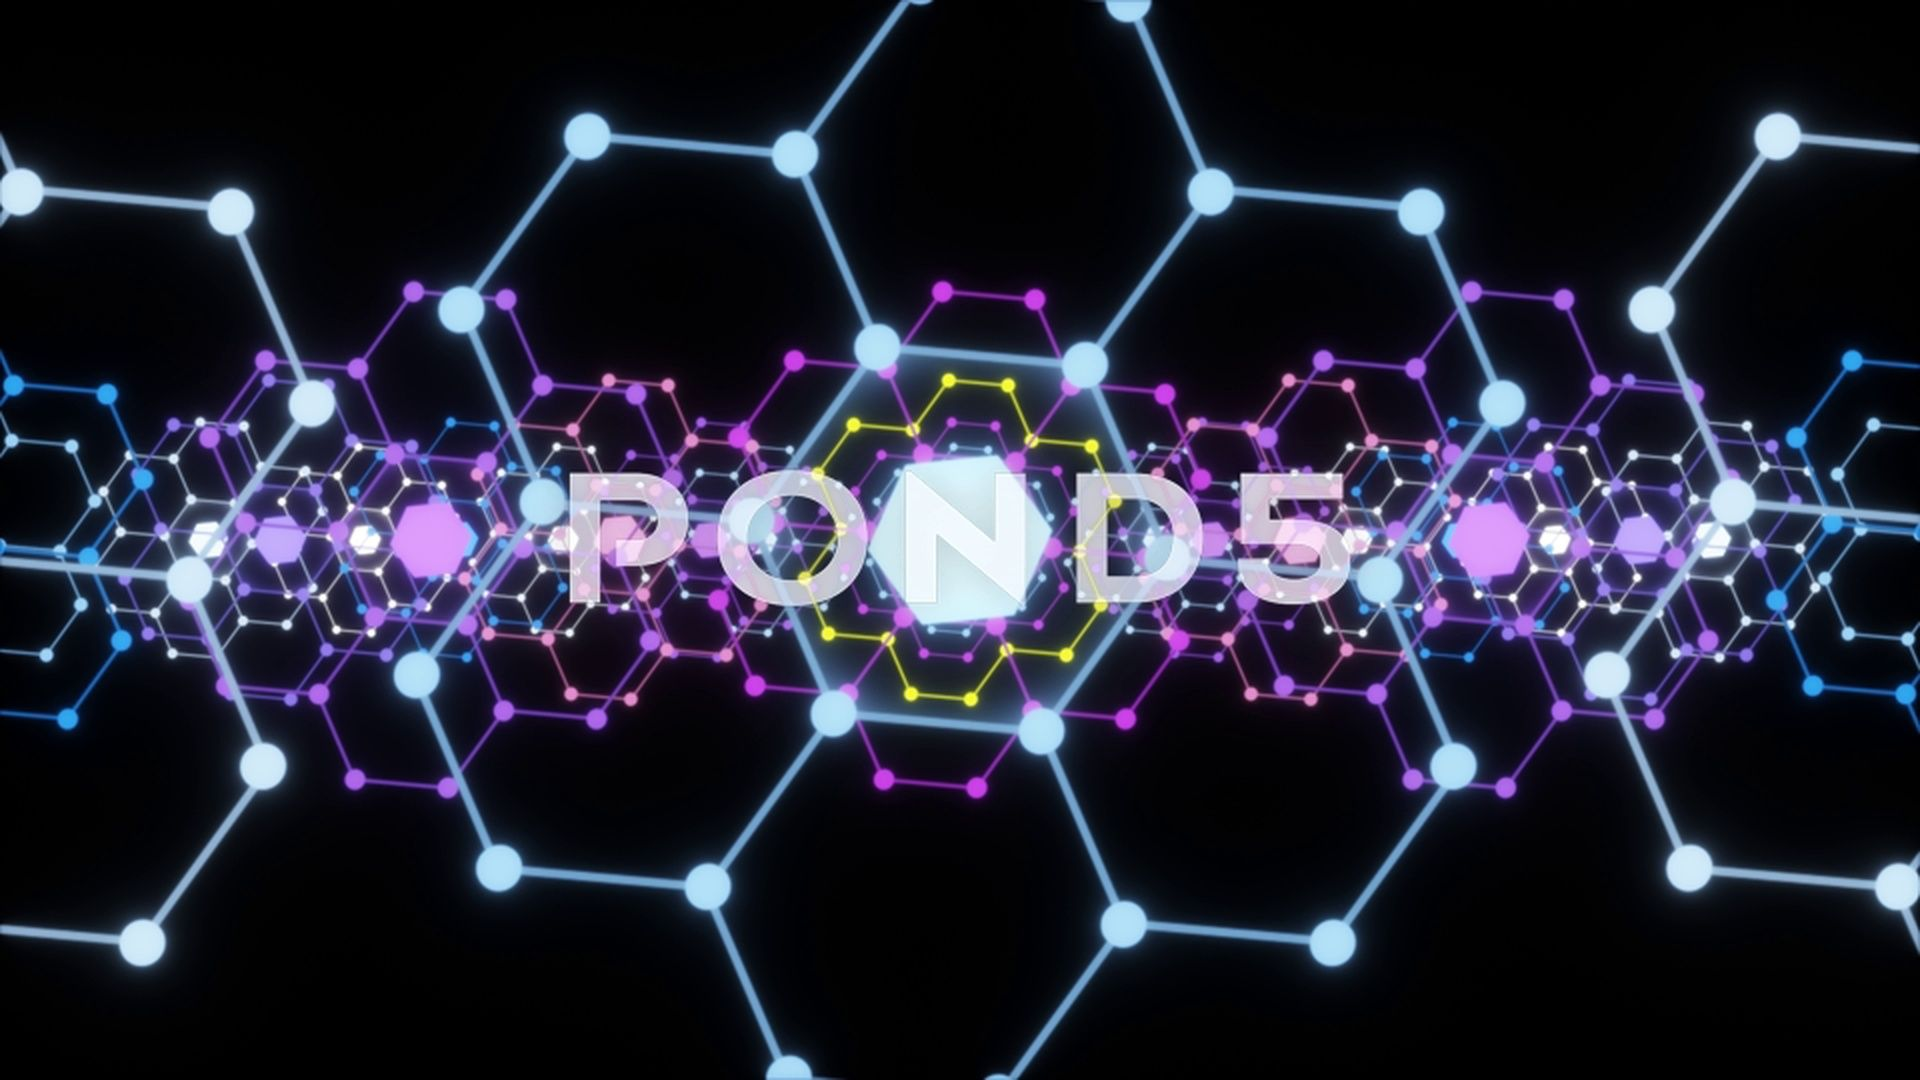 Abstract shape and transparent background, hexagon, alpha